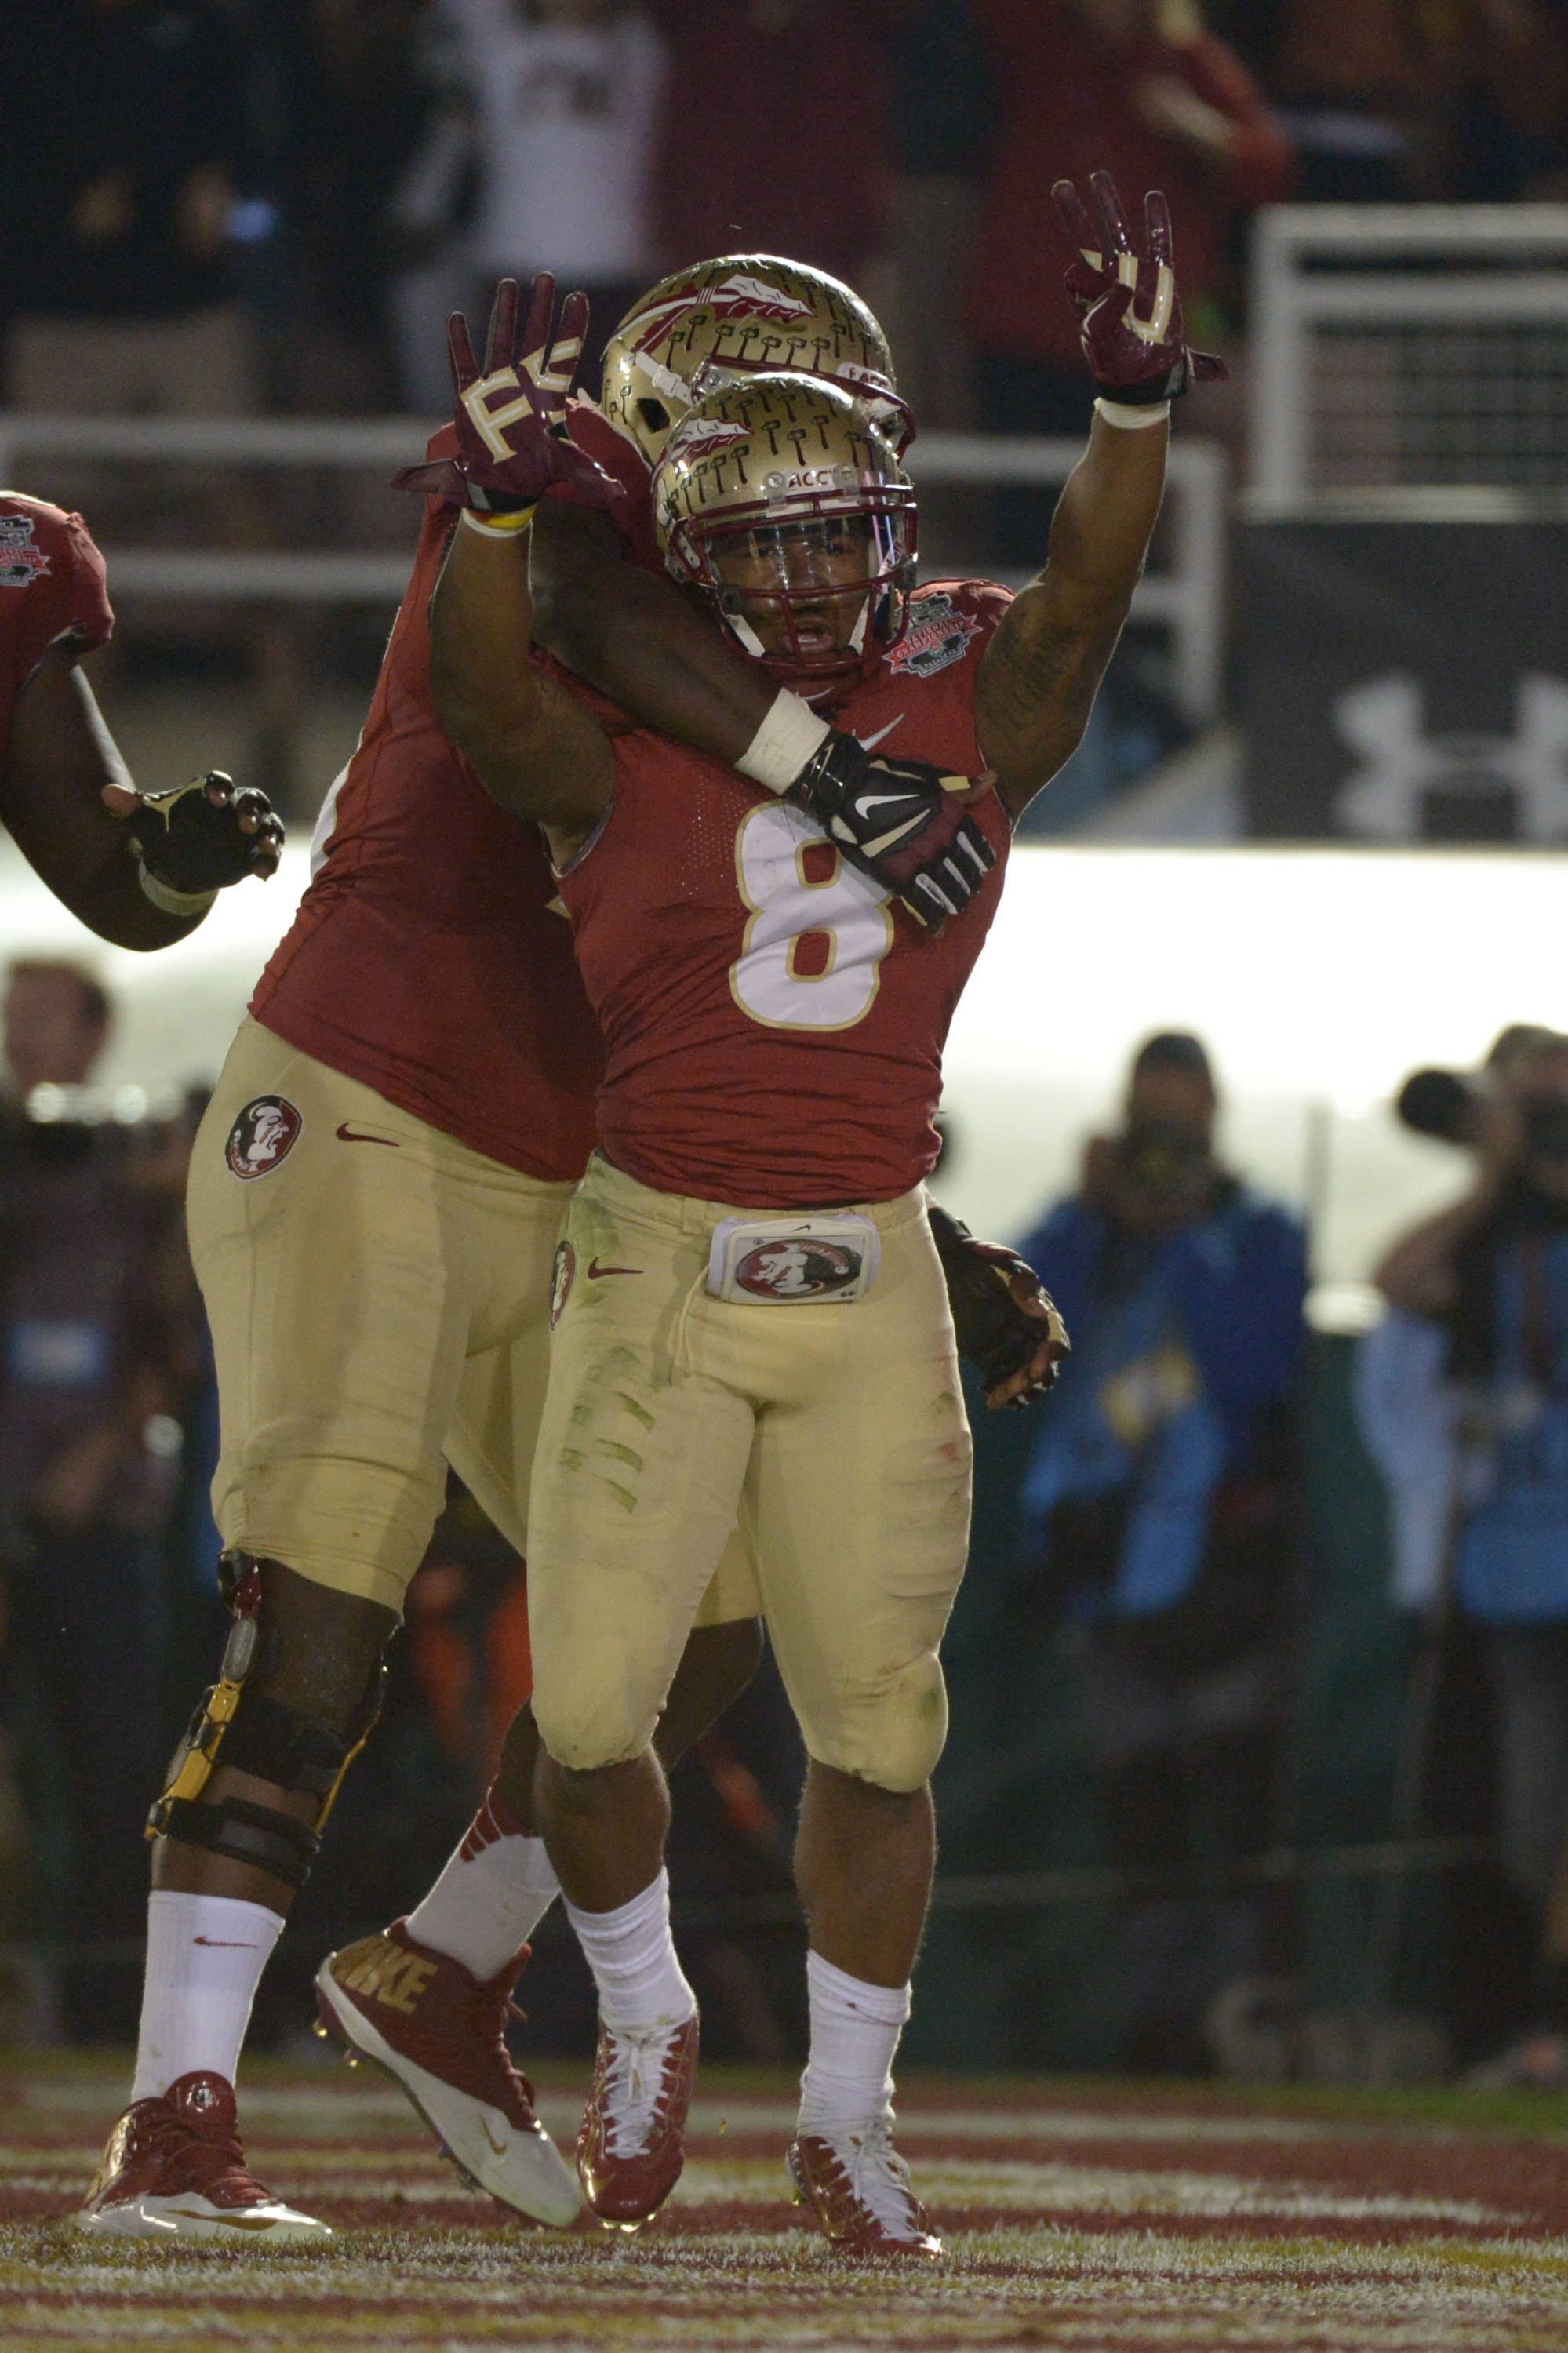 Jan 6, 2014; Pasadena, CA, USA; Florida State Seminoles running back Devonta Freeman (8) celebrates after scoring a touchdown against the Auburn Tigers during the first half of the 2014 BCS National Championship game at the Rose Bowl.  Mandatory Credit: Kirby Lee-USA TODAY Sports